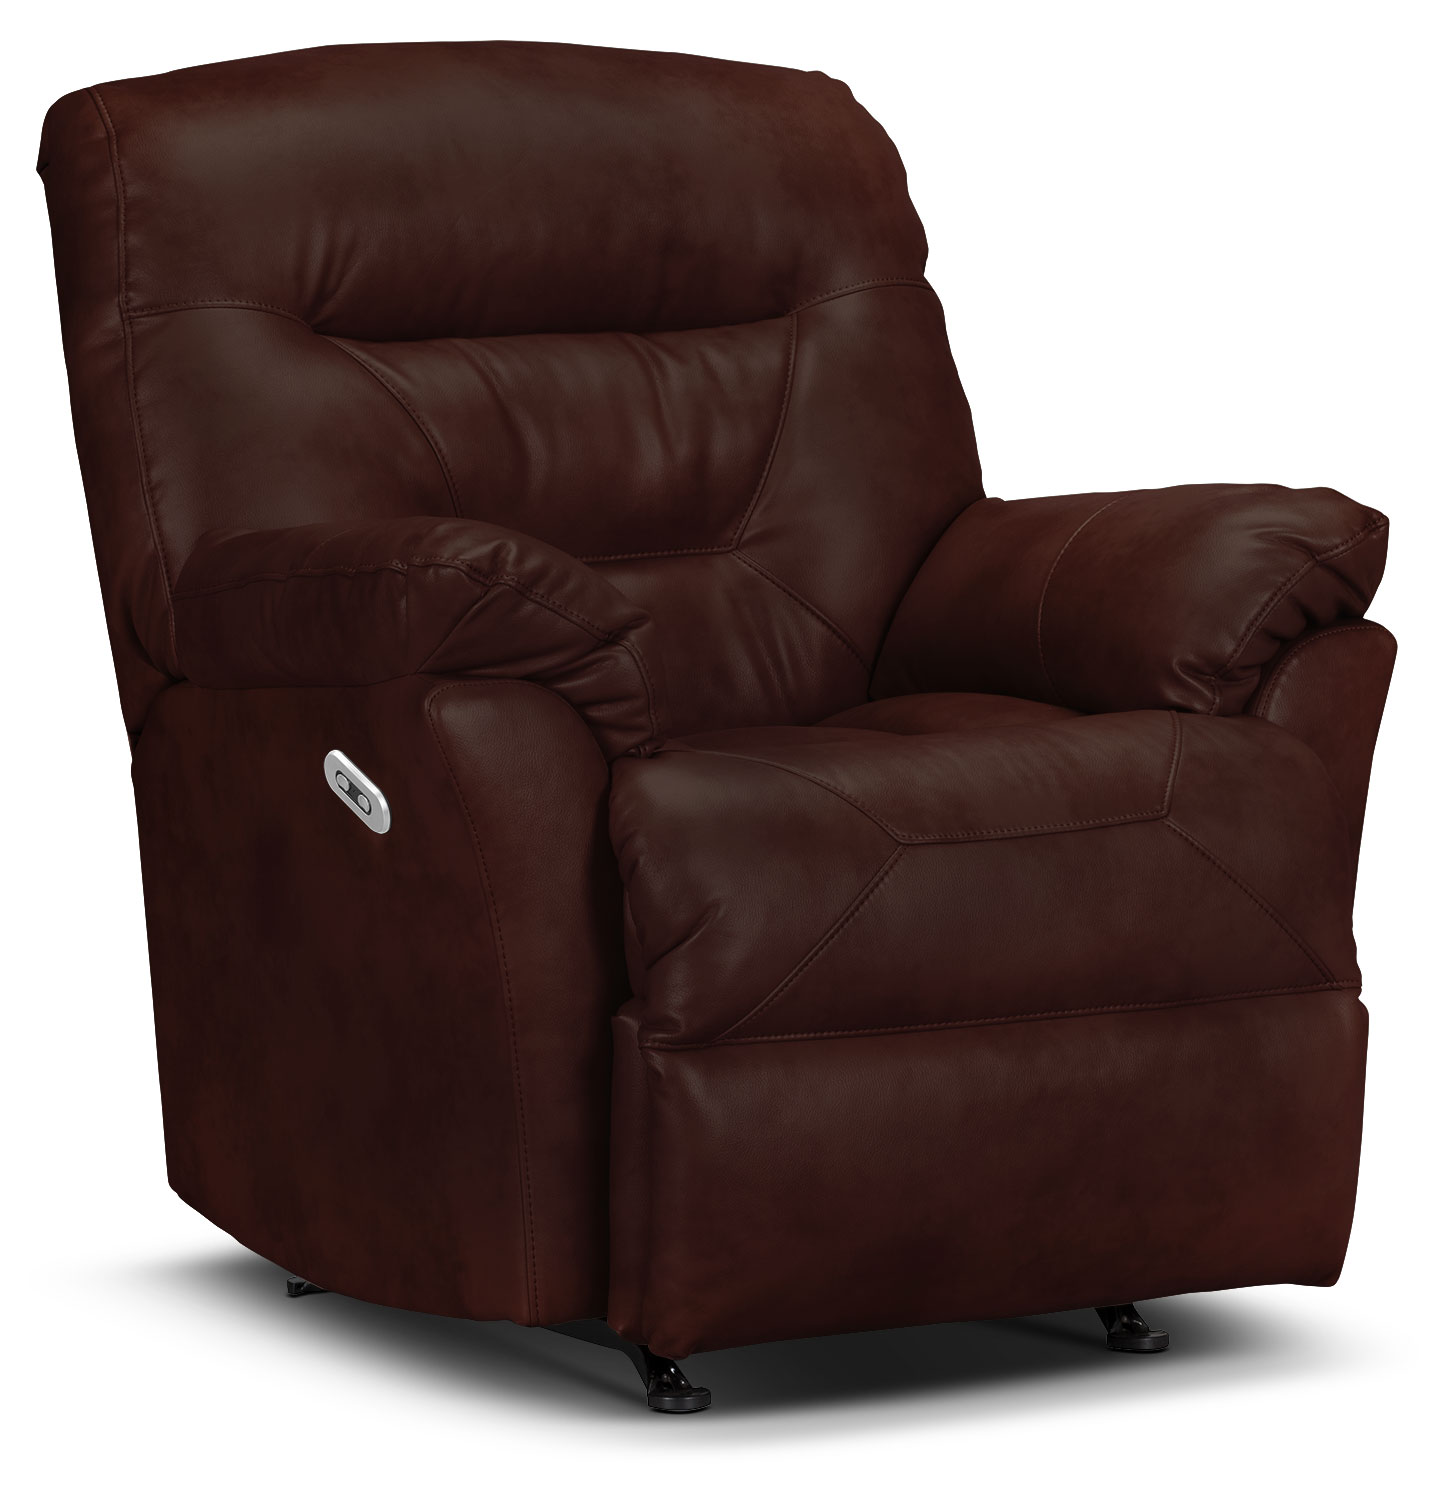 Designed2B Recliner 4579 Genuine Leather Power Recliner - Walnut